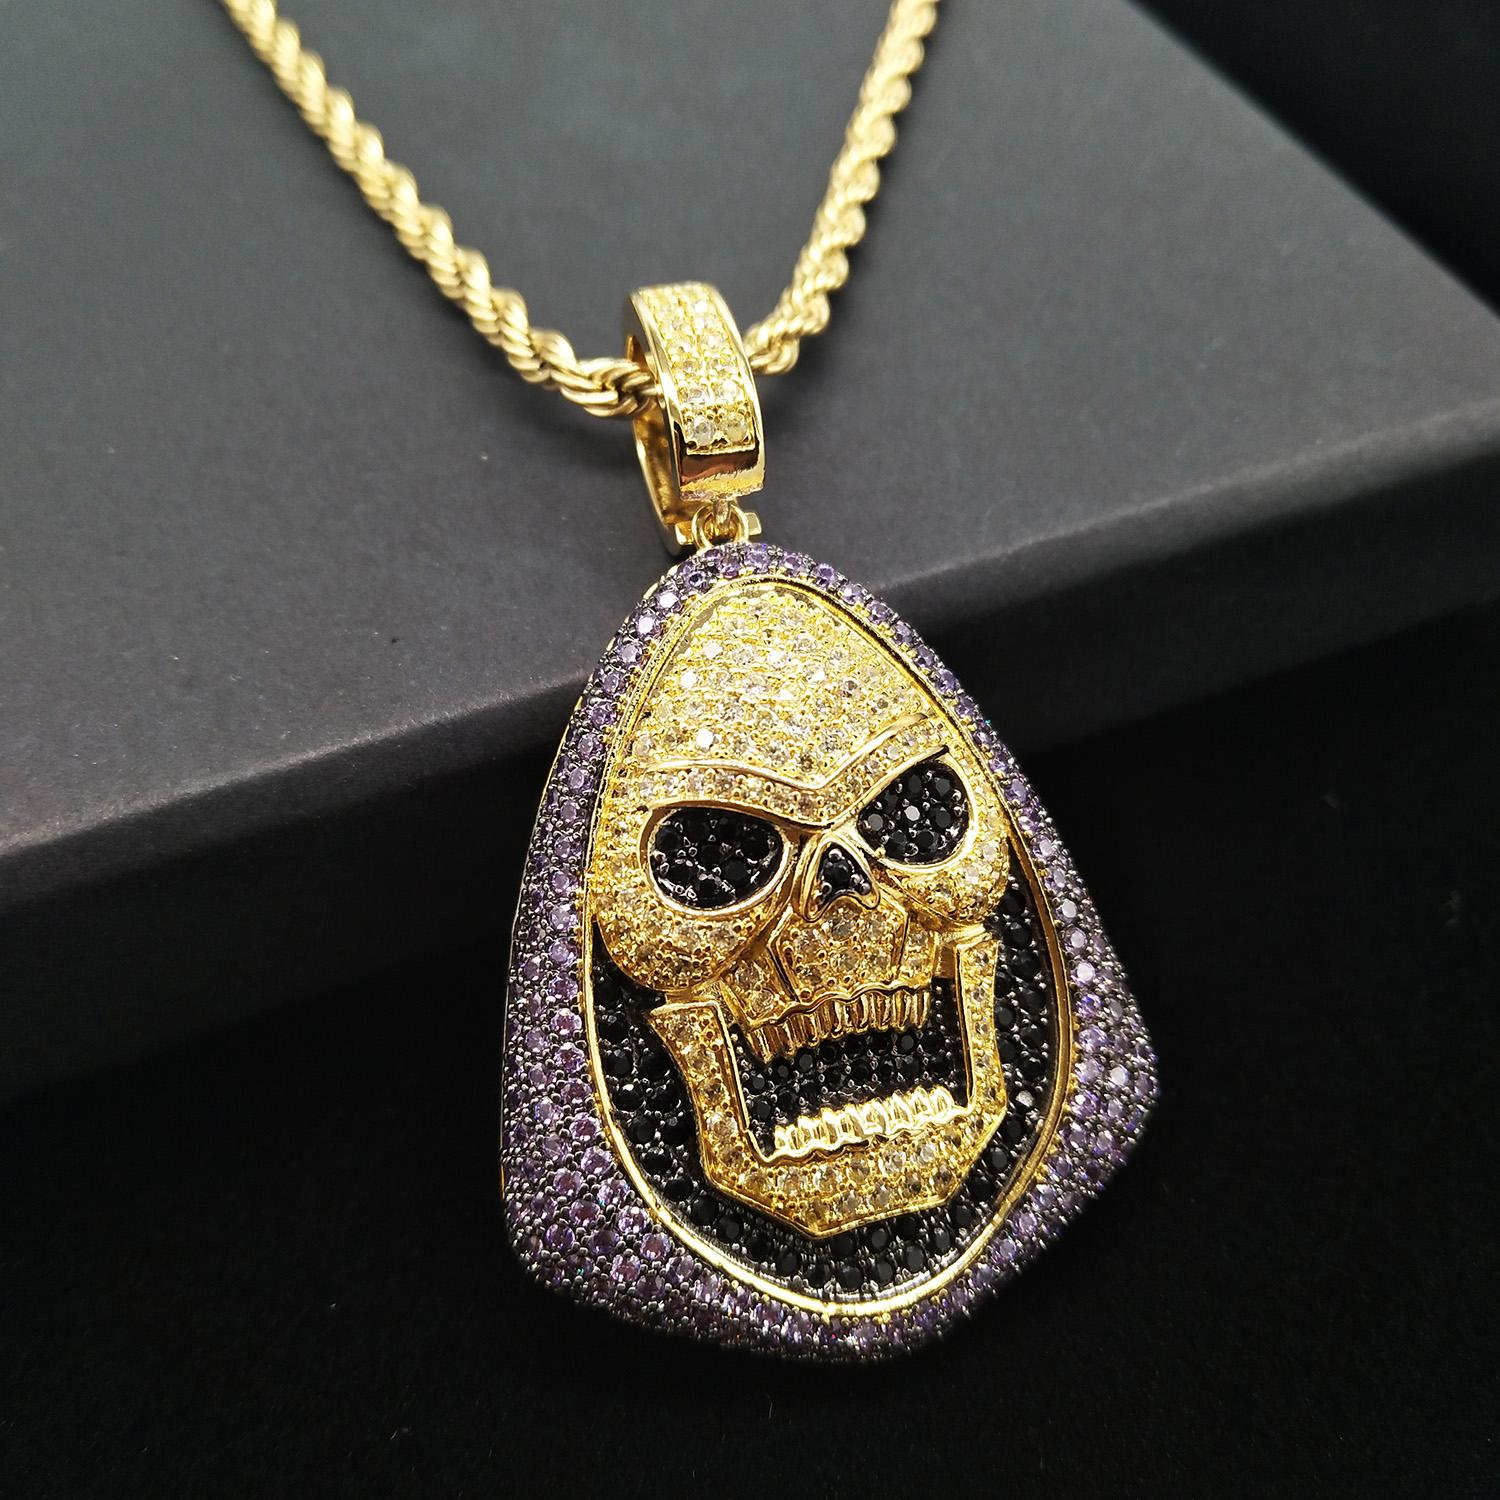 Gold Bling Purple Black Diamond Skeleton Pendant Mens Chain Necklace Hip Hop Iced Out Cubic Zirconia Balentine Day Jewelry Gifts For Guys